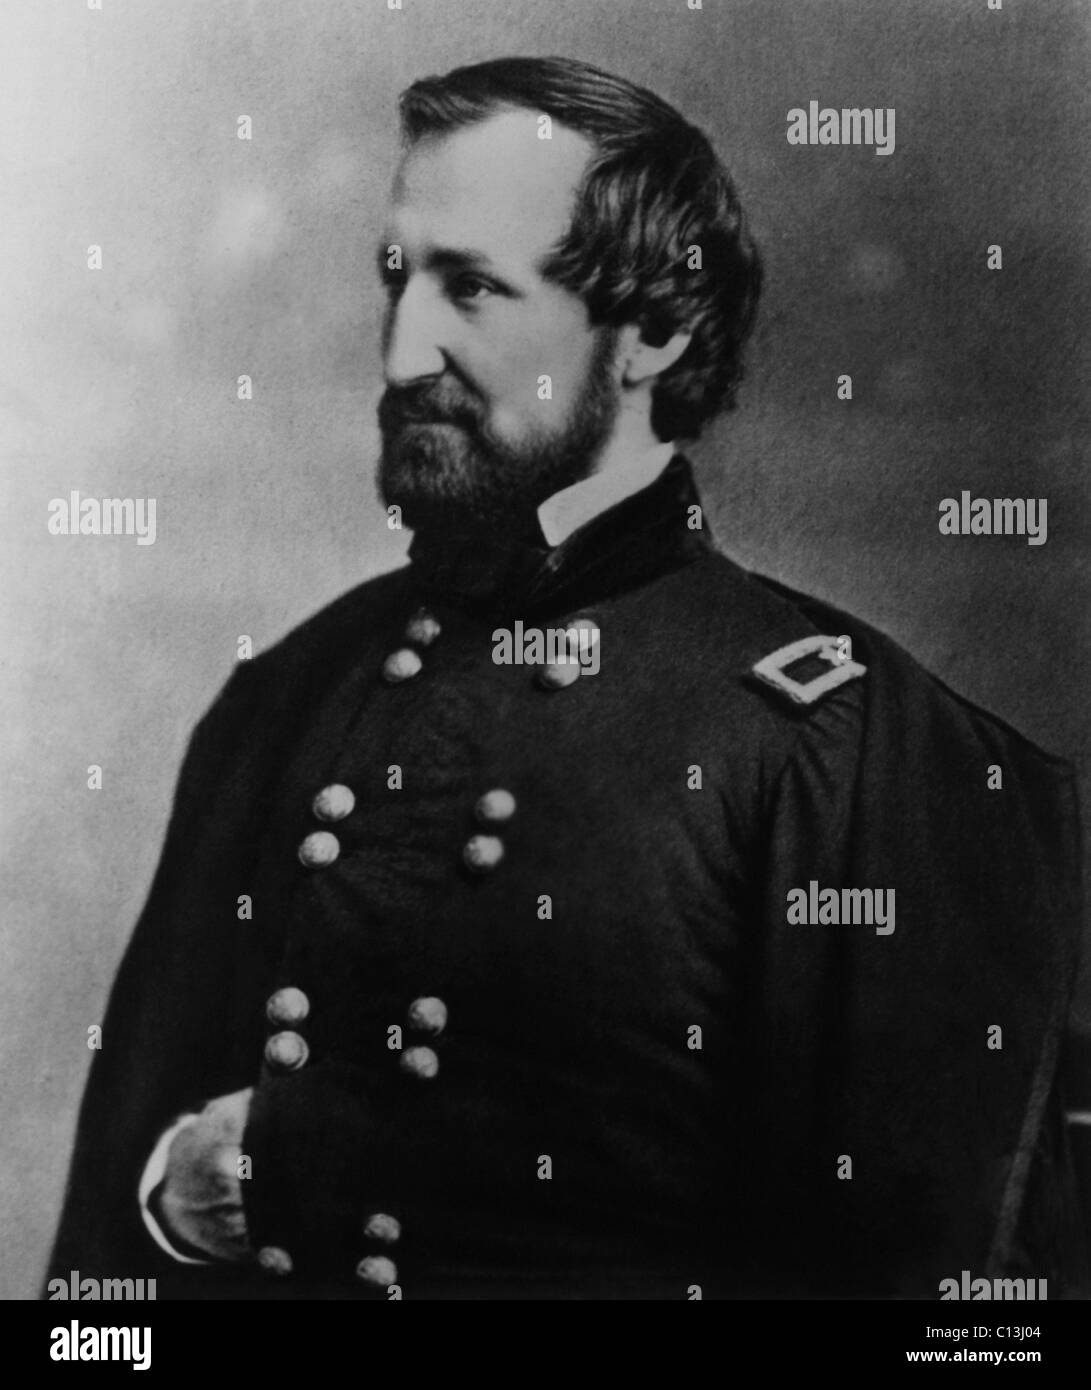 William Rosecrans (1819-1898), U.S. Army General for the Union in the Civil War, circa 1860s. - Stock Image